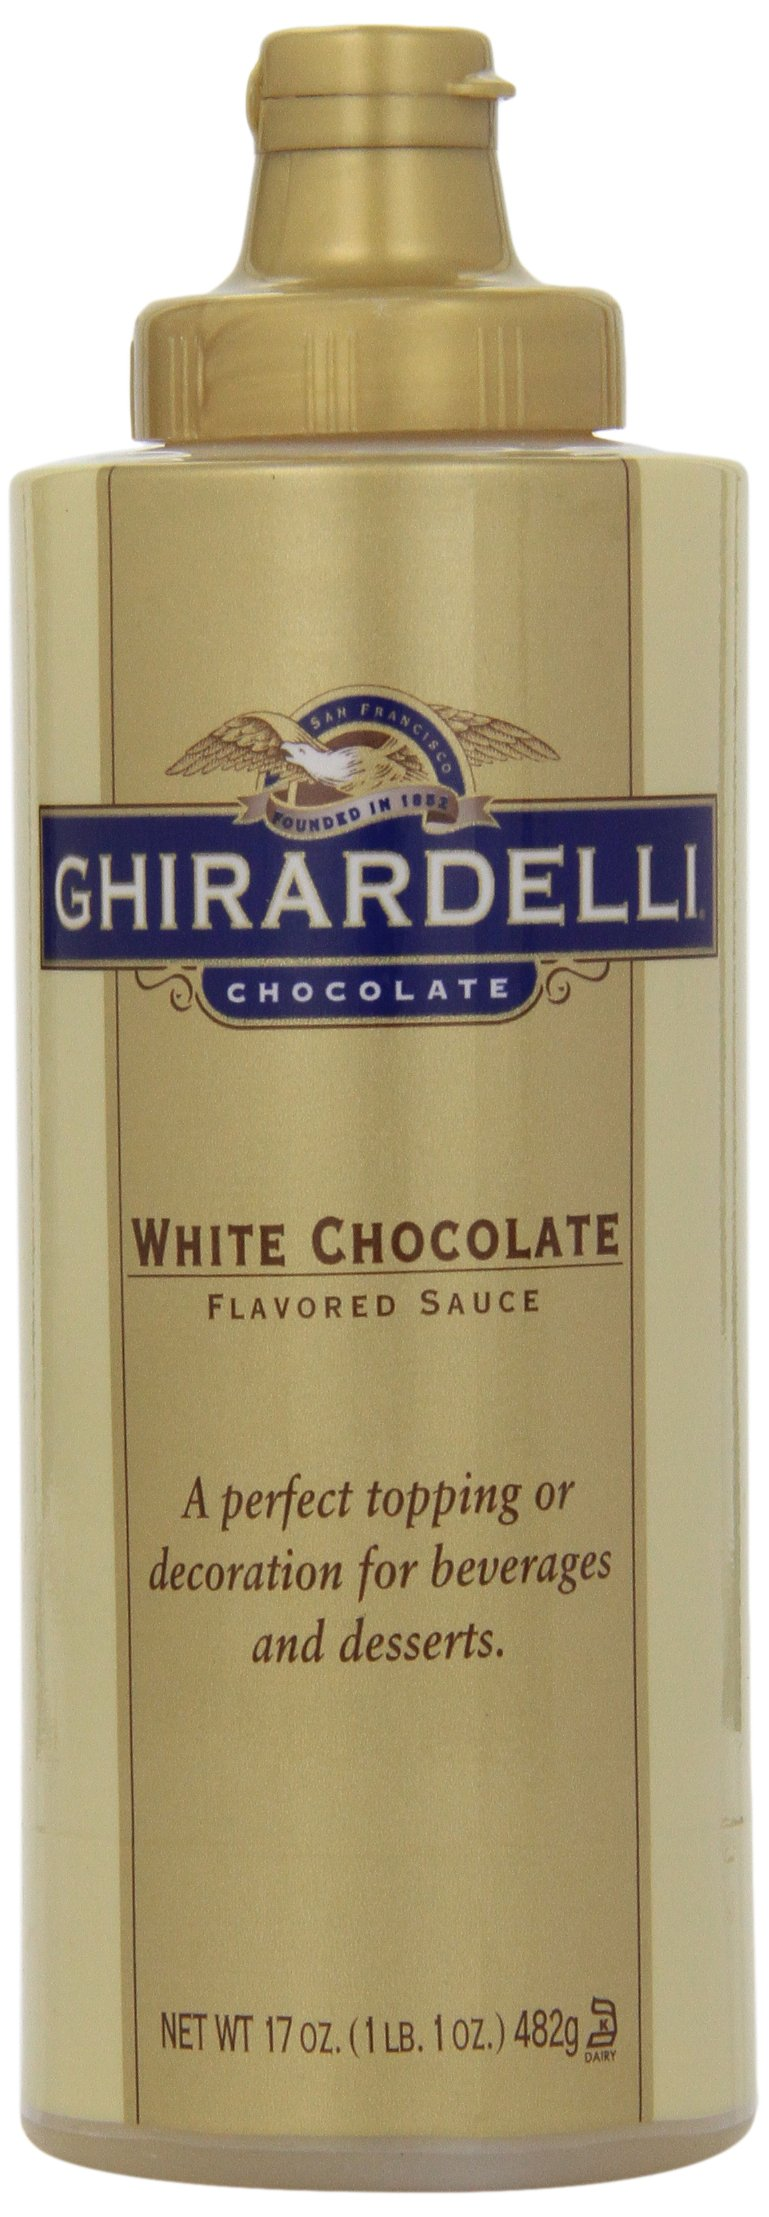 Ghirardelli White Chocolate Flavored Sauce, 17-Ounce Bottles (Pack of 6)